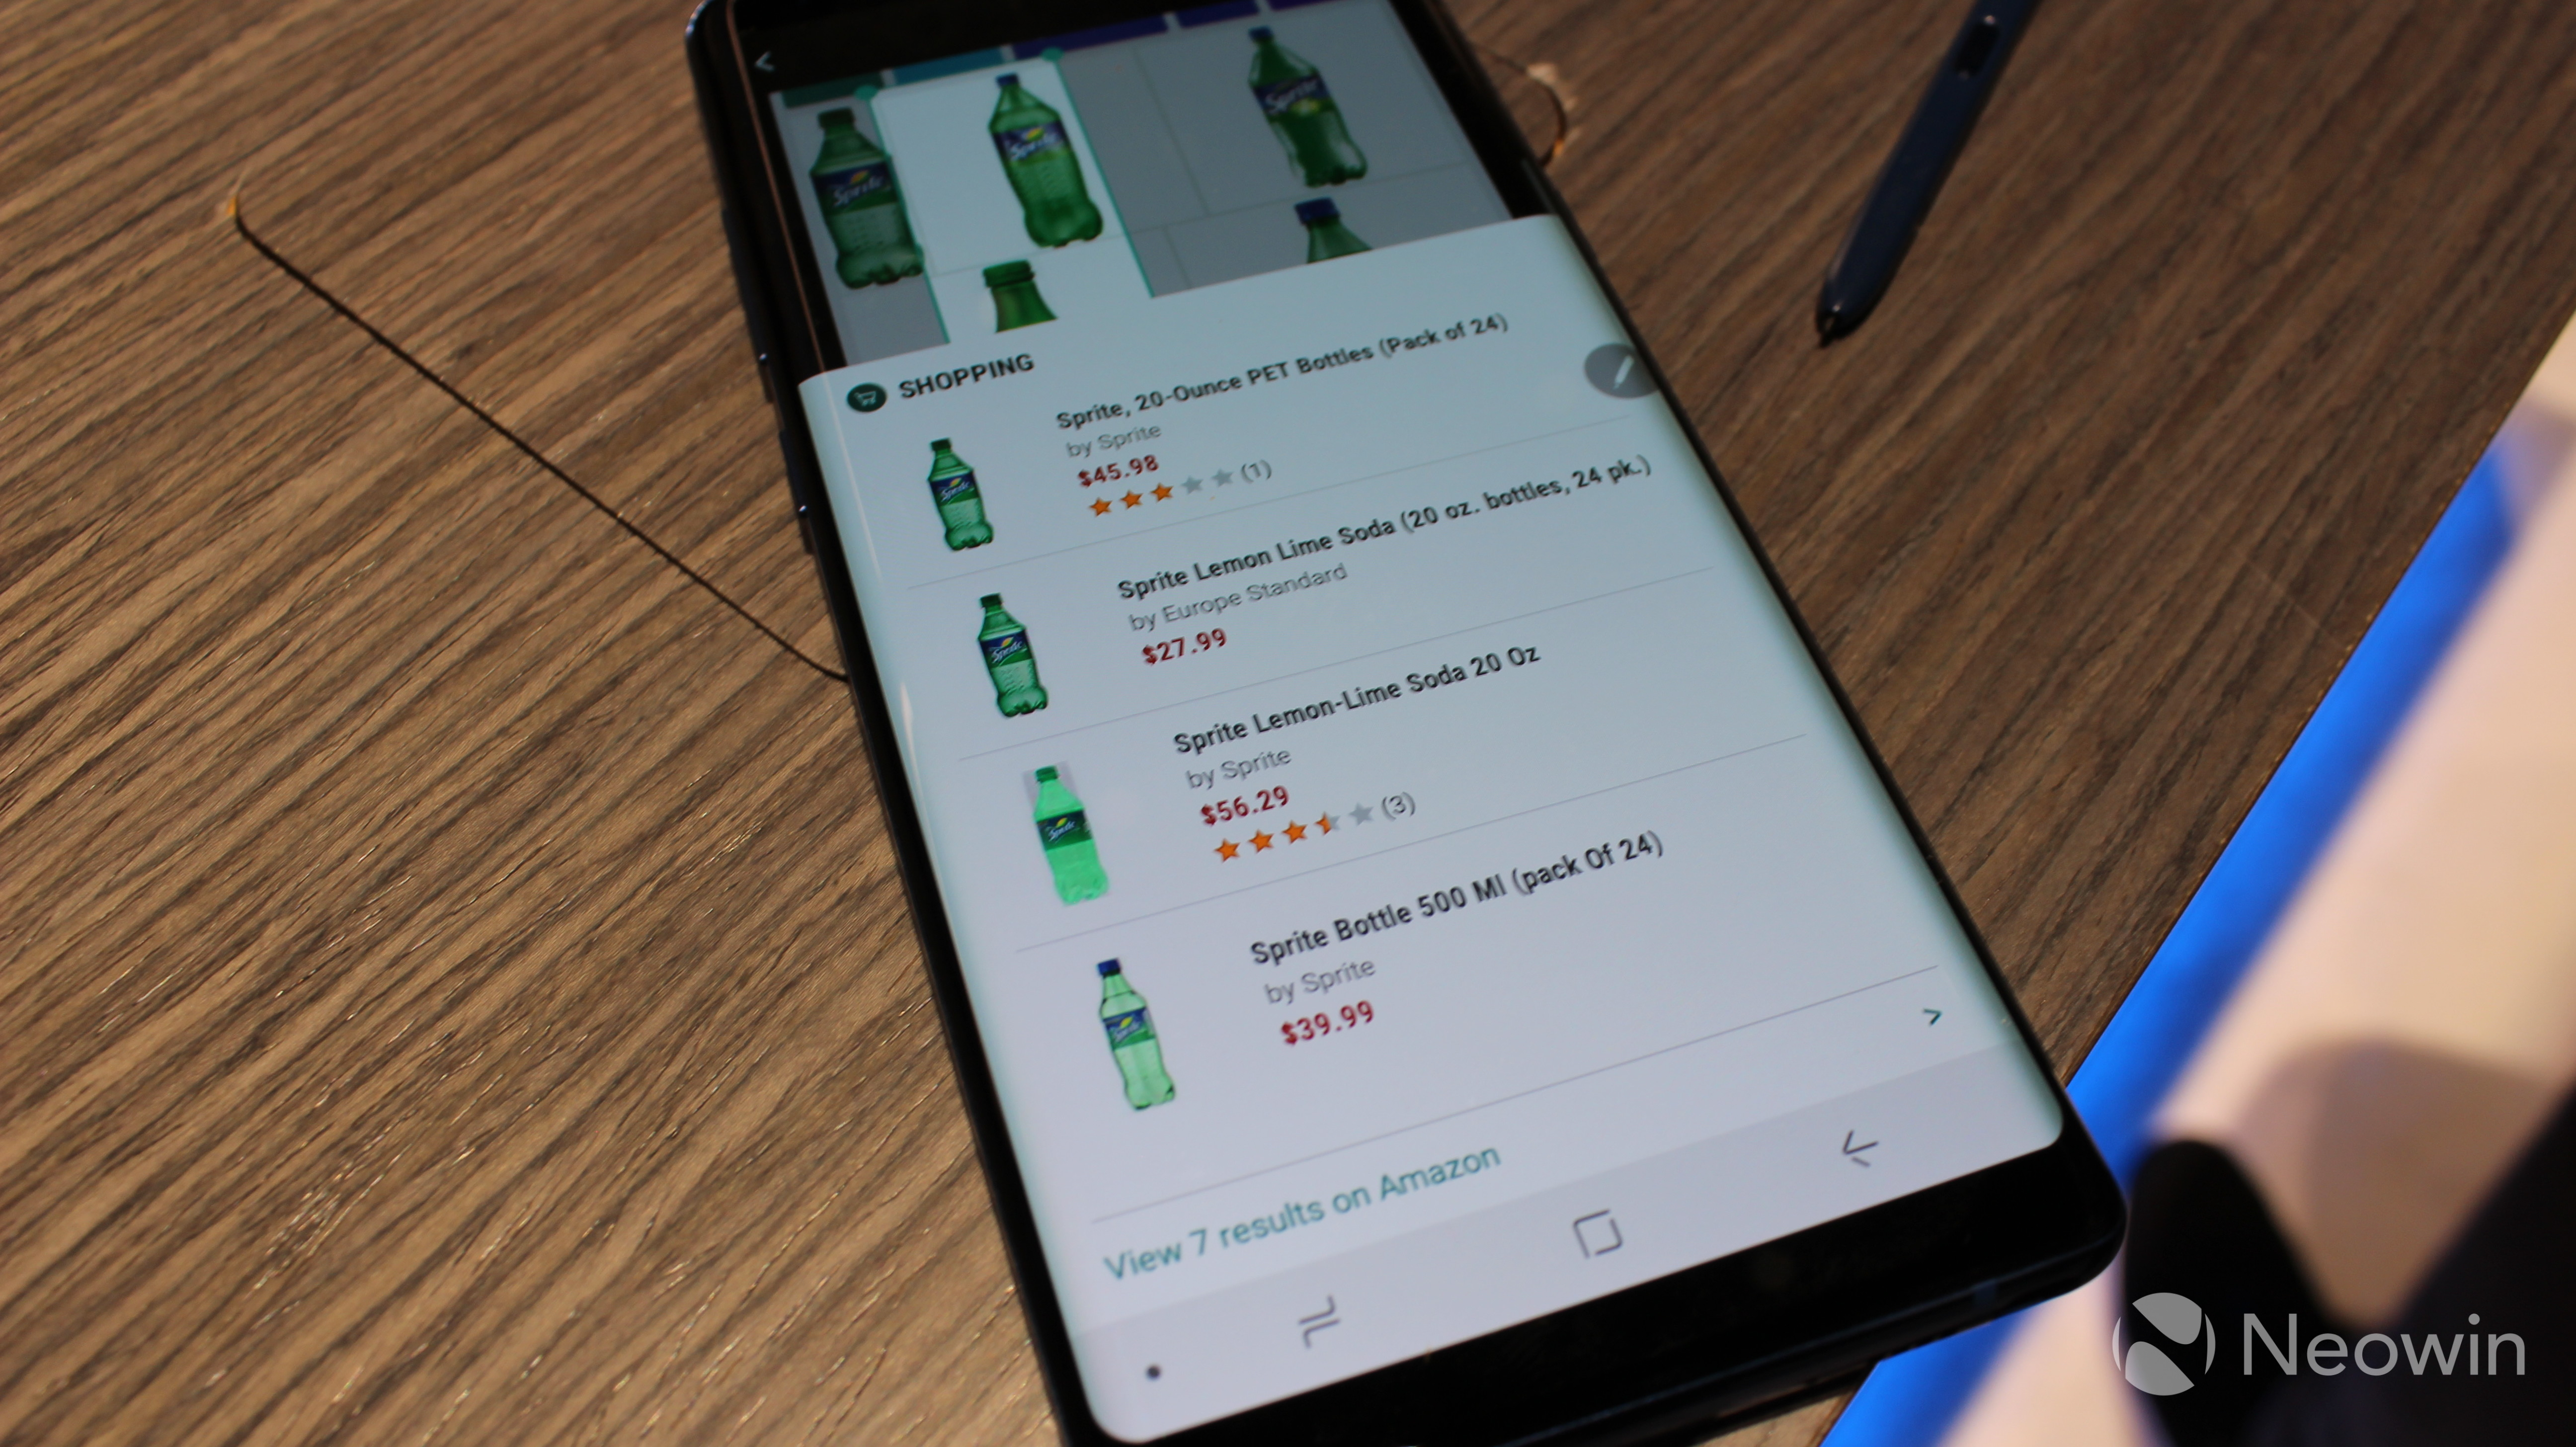 Hands on with Galaxy Note8 - Samsung writes its wrongs - Neowin